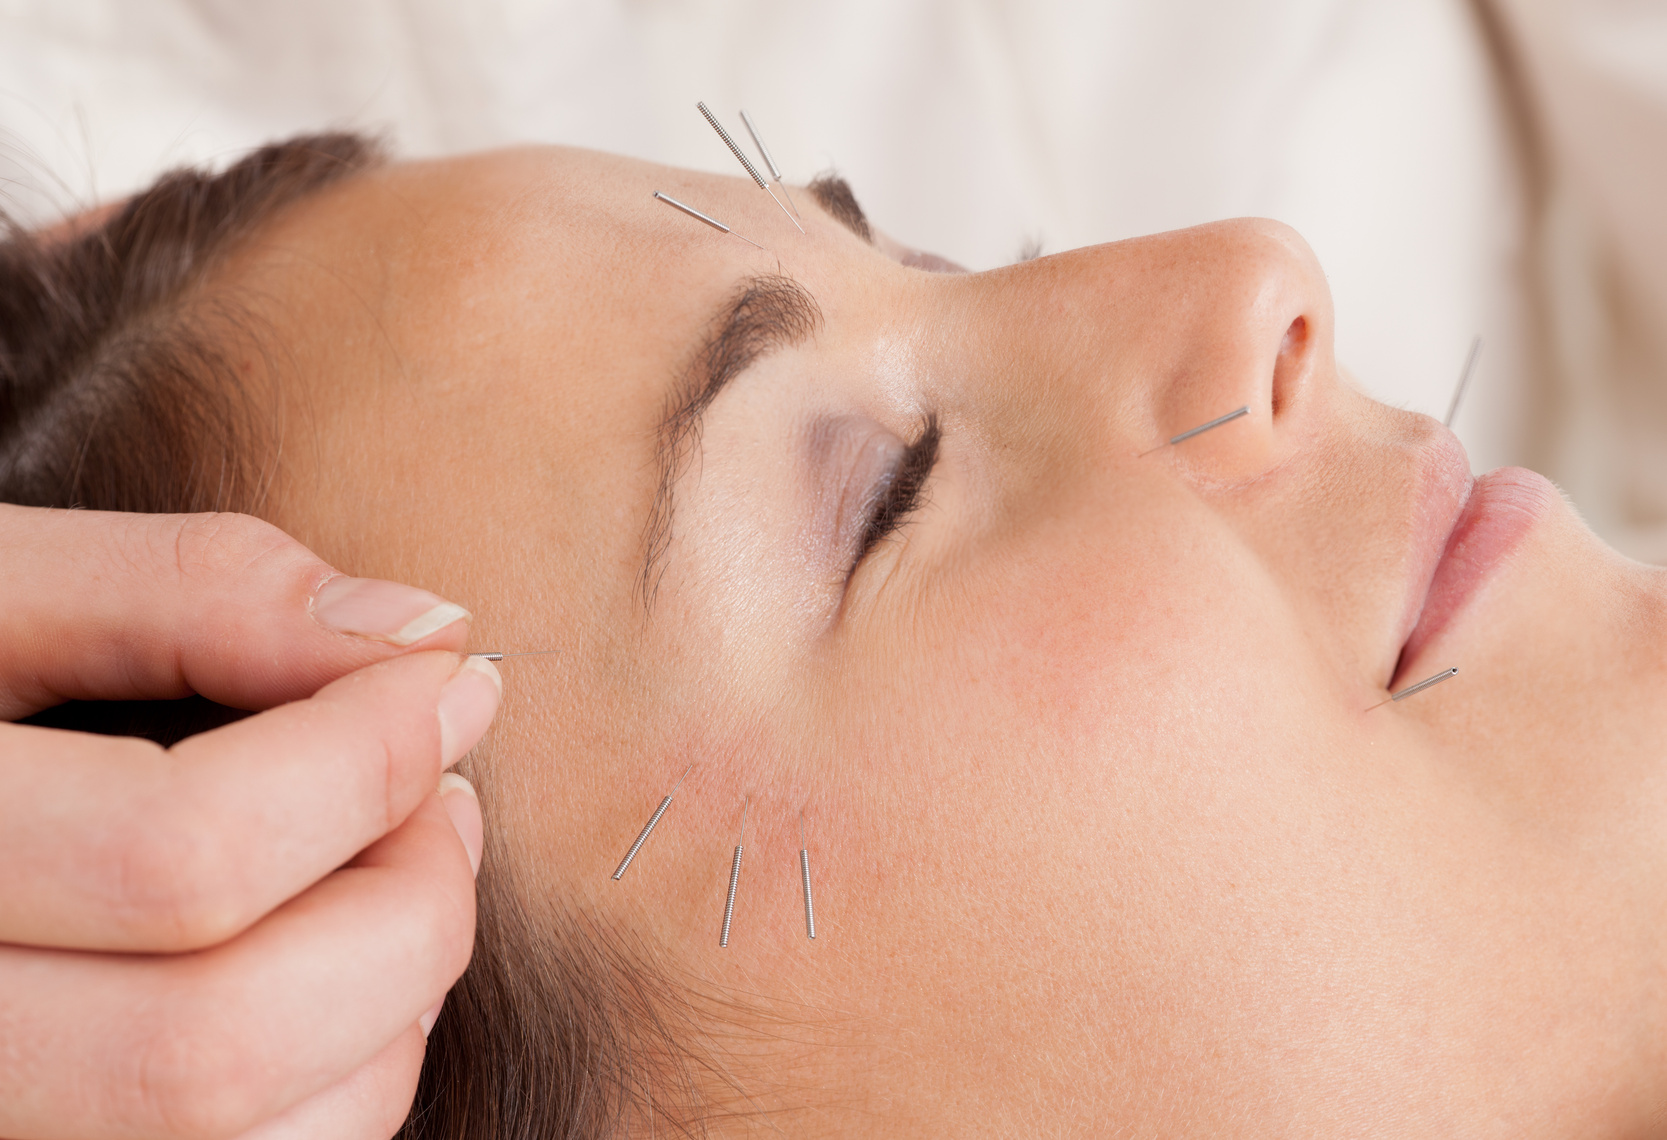 Acupuncture can help you live without that pain